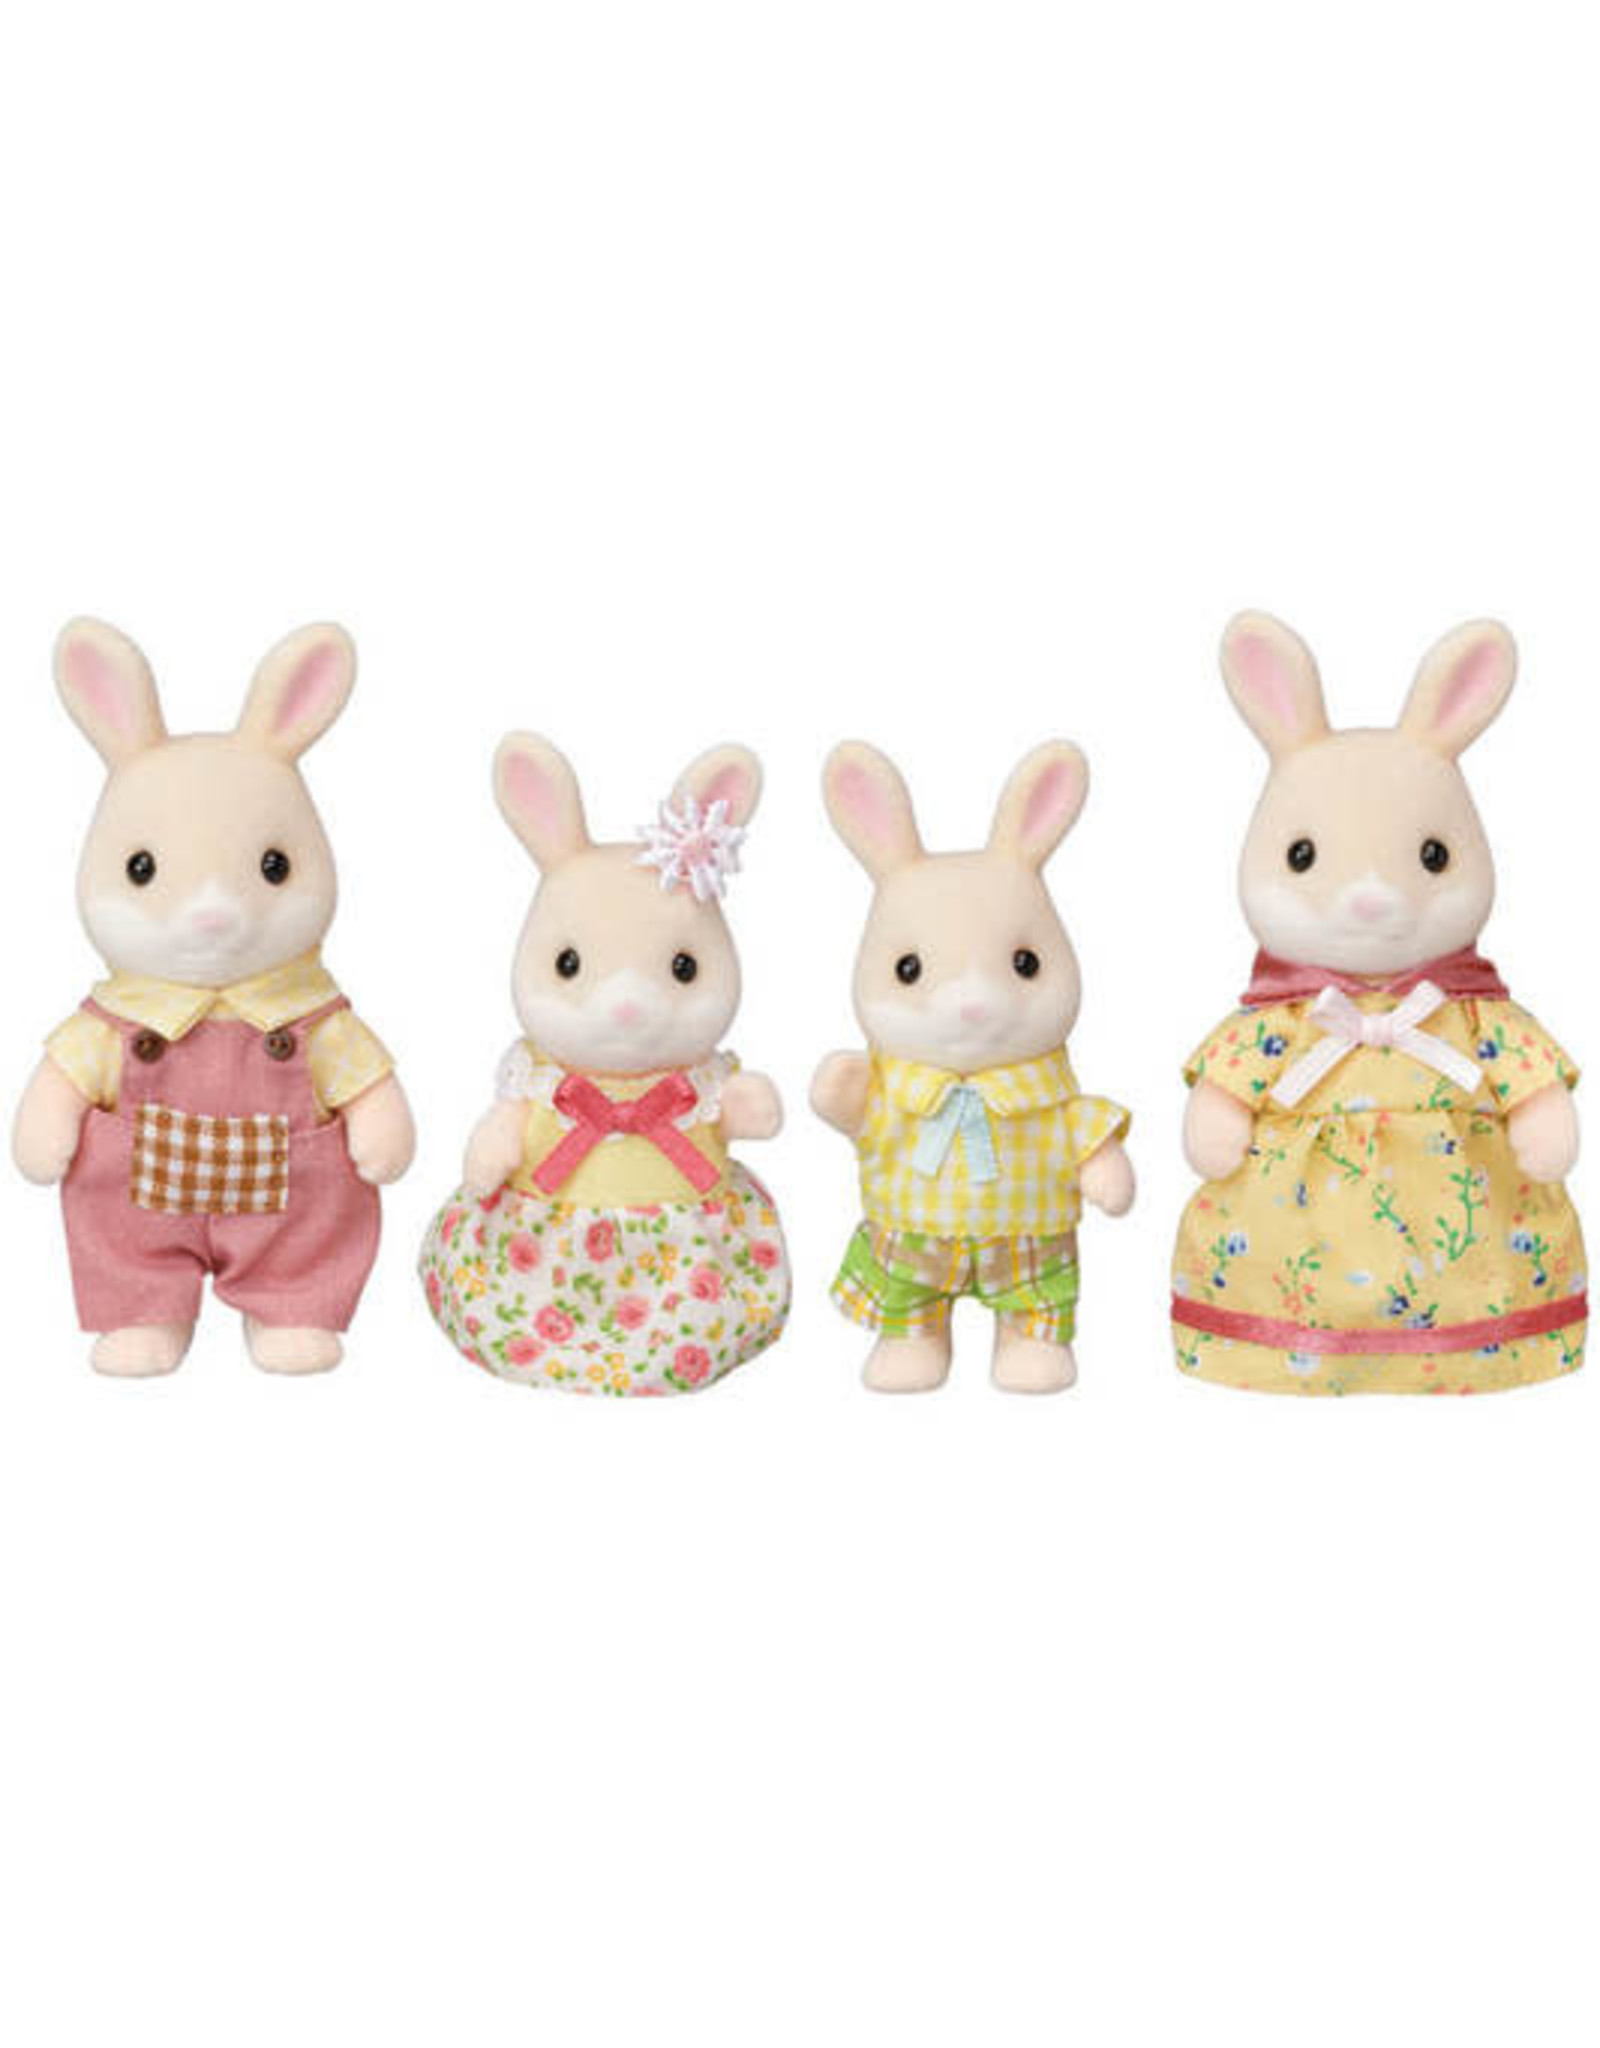 Calico Critters Calico Critters Marguerite Rabbit Family